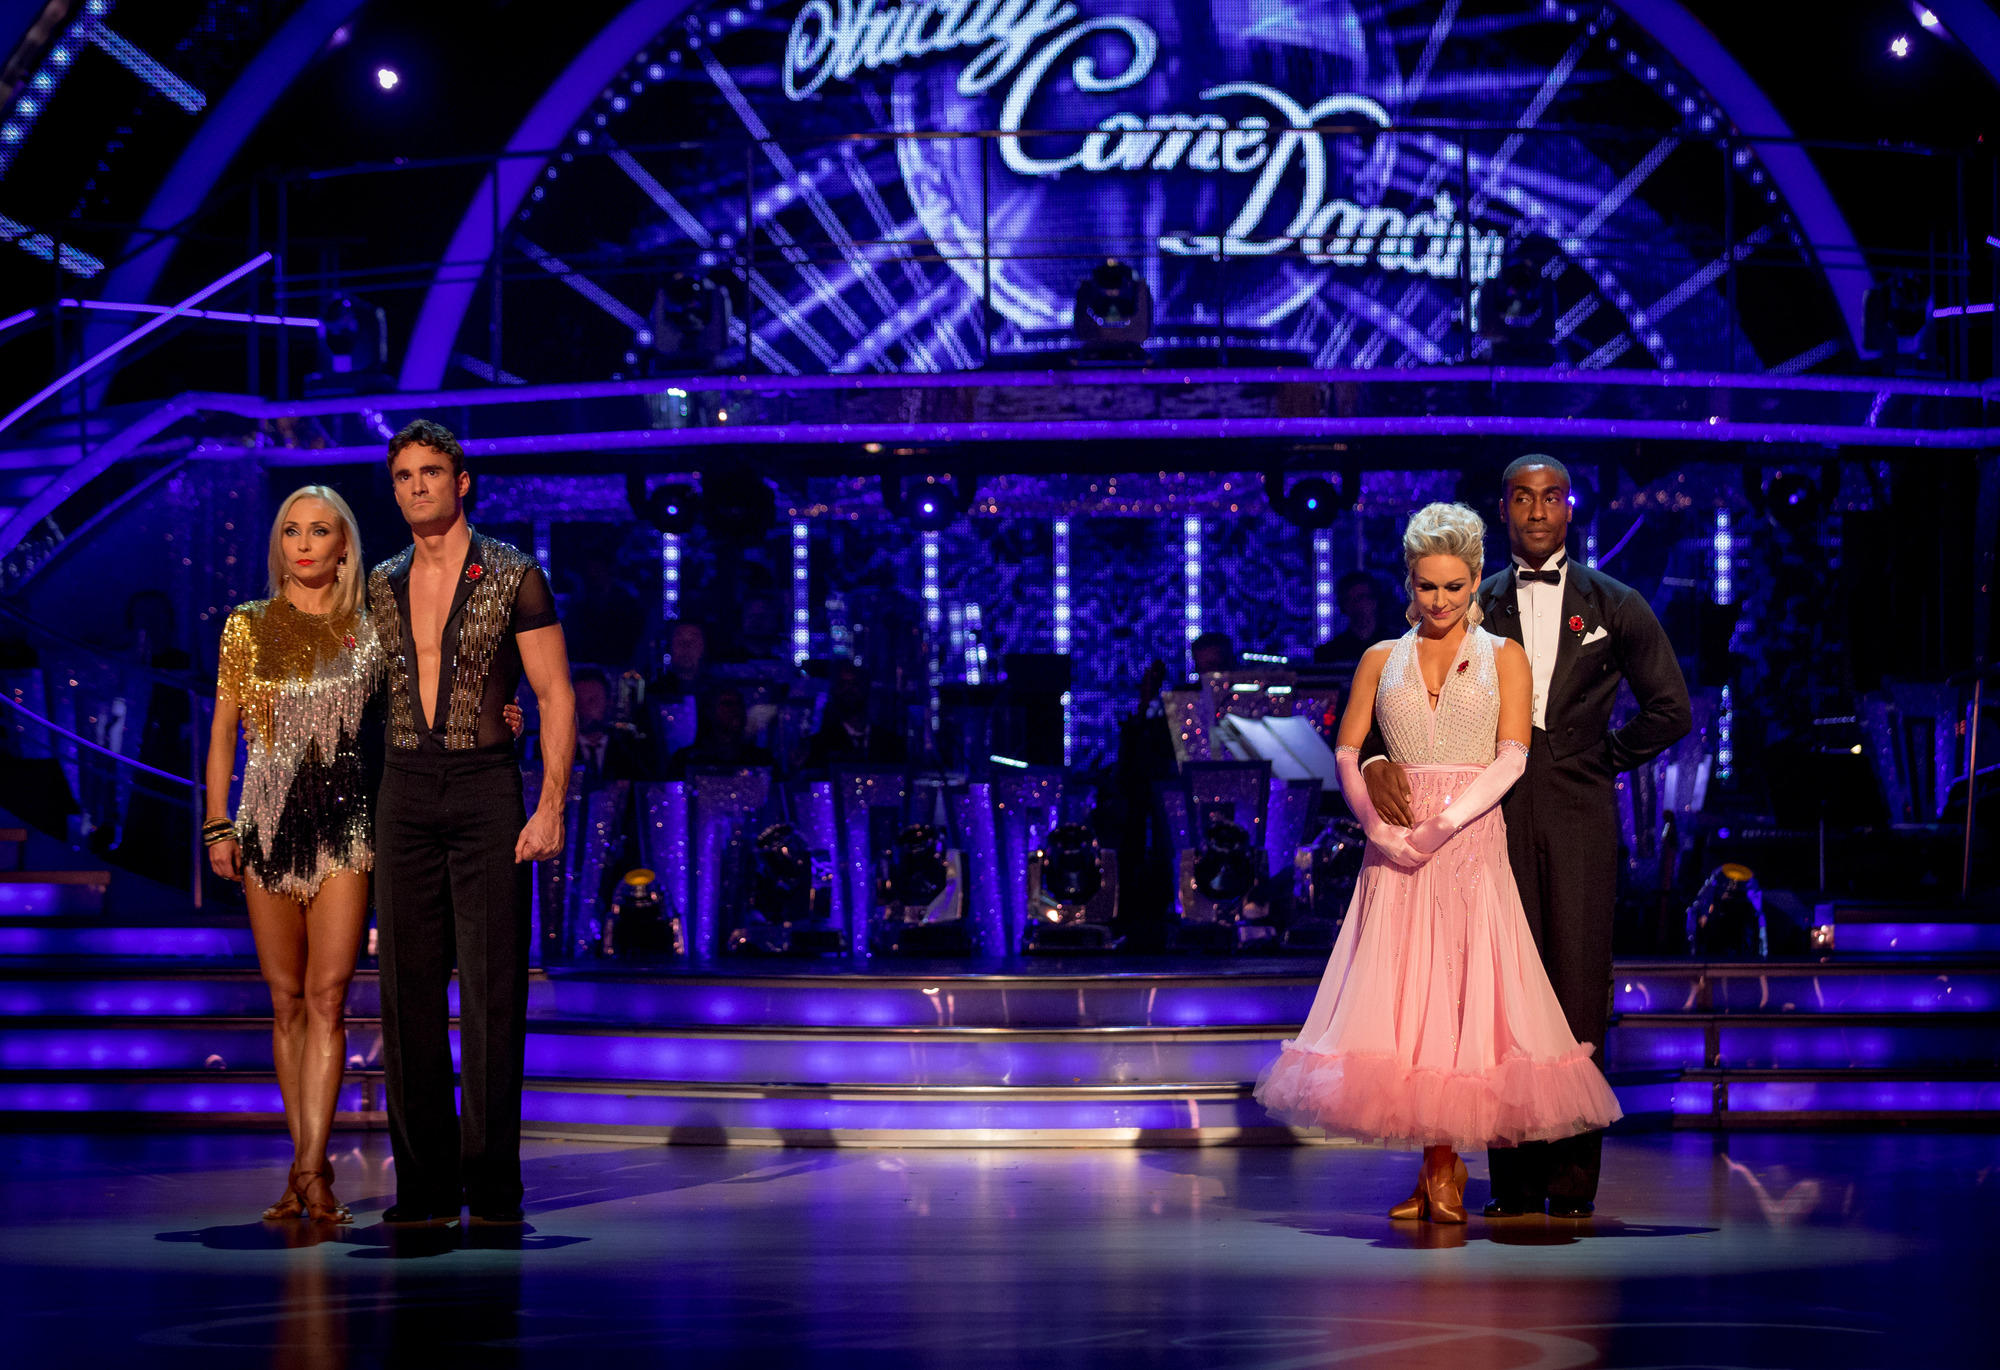 Strictly Come Dancing 2014 results: Who didn't make it to Halloween week?